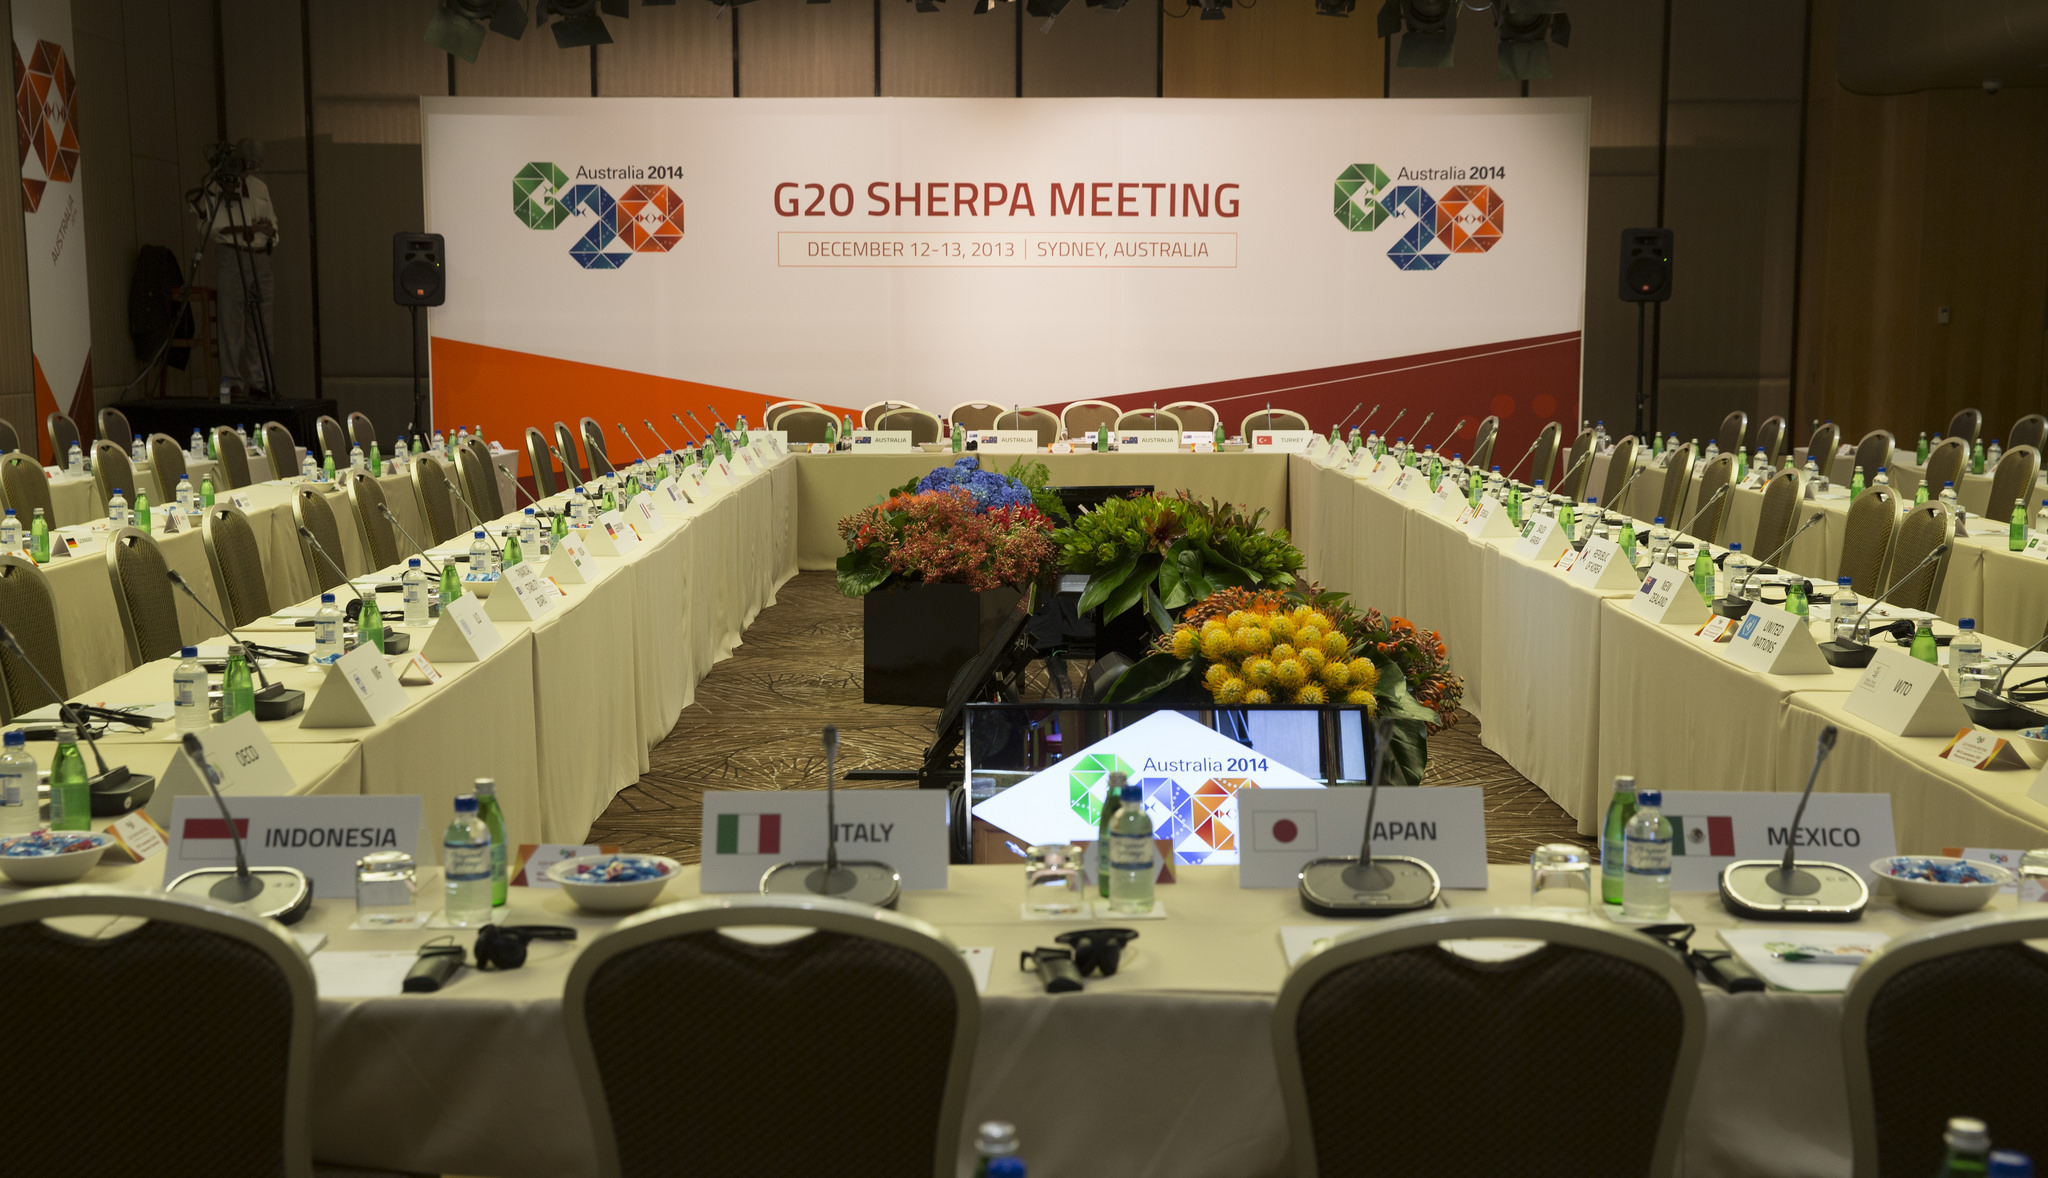 g20 sherpa meeting 2013